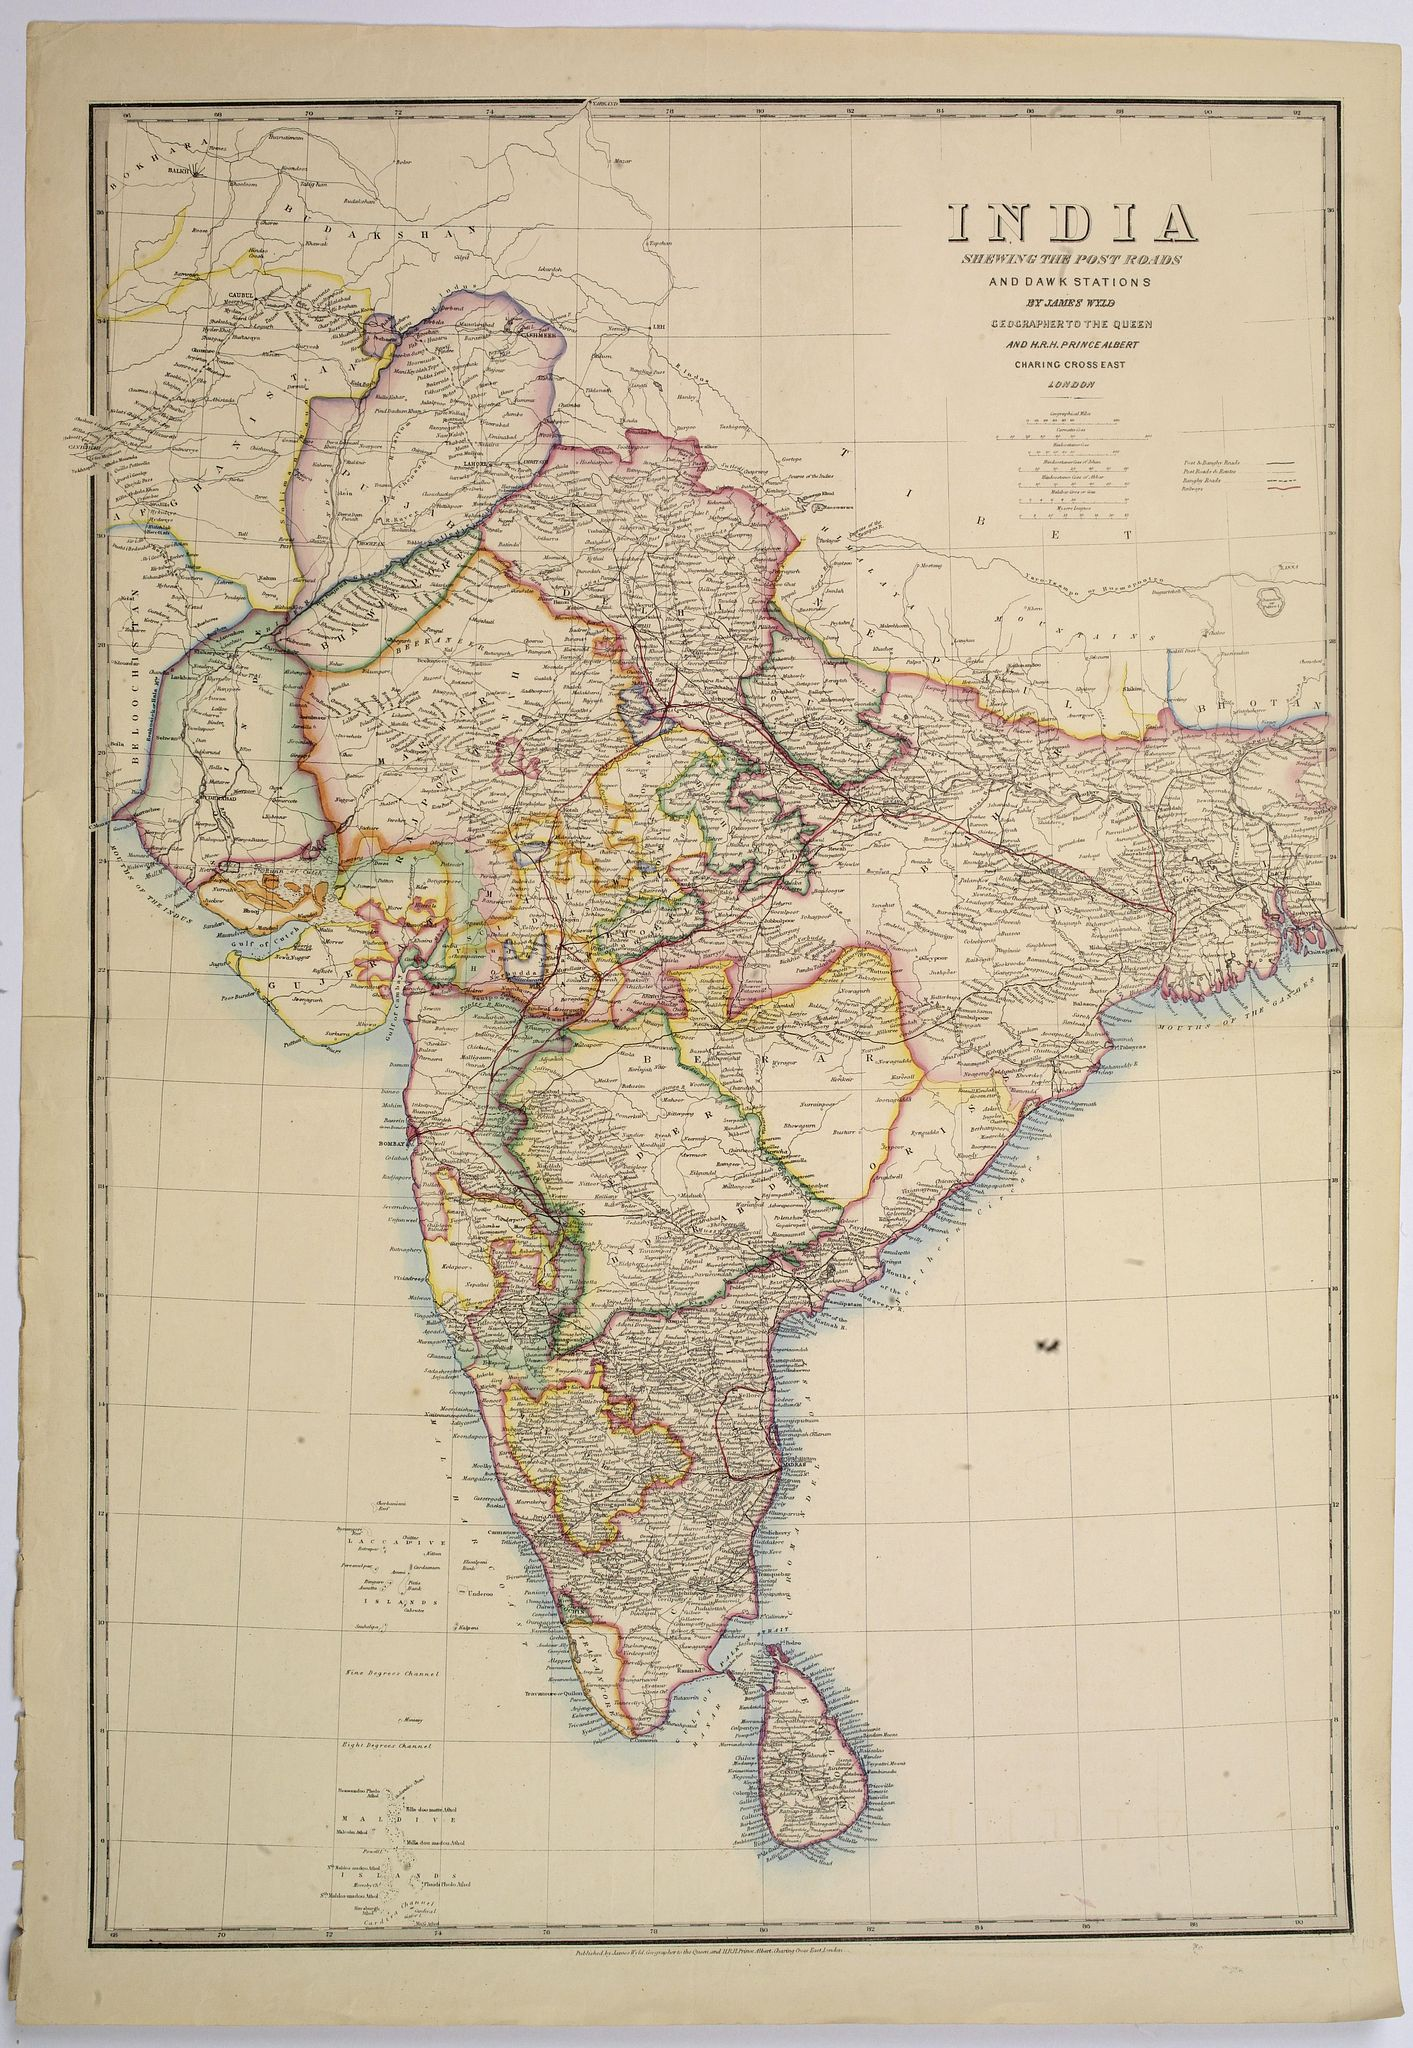 WYLD, J. - India shewing the post roads and dawk stations by James Wyld, geographer to the Queen and H.R.H. Prince Albert.